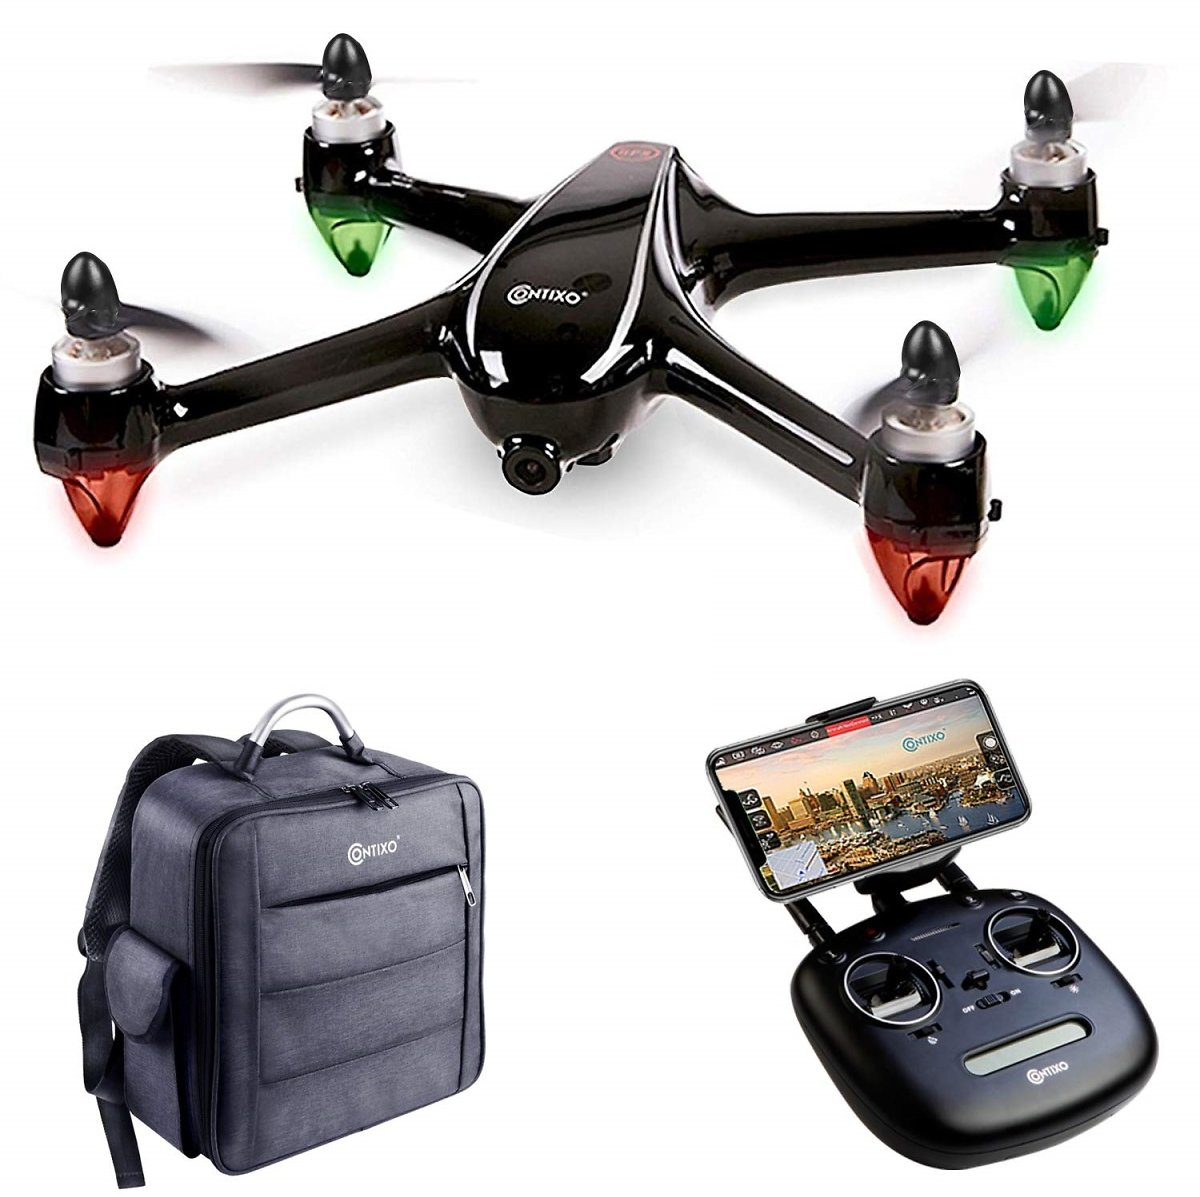 Conixo F18 Drone with 2K HD WiFi Camera Live Video Streaming Altitude Hold GPS FPV Brushless Motors RTH for Beginners Adults Plus Backpack Storage Drone Case